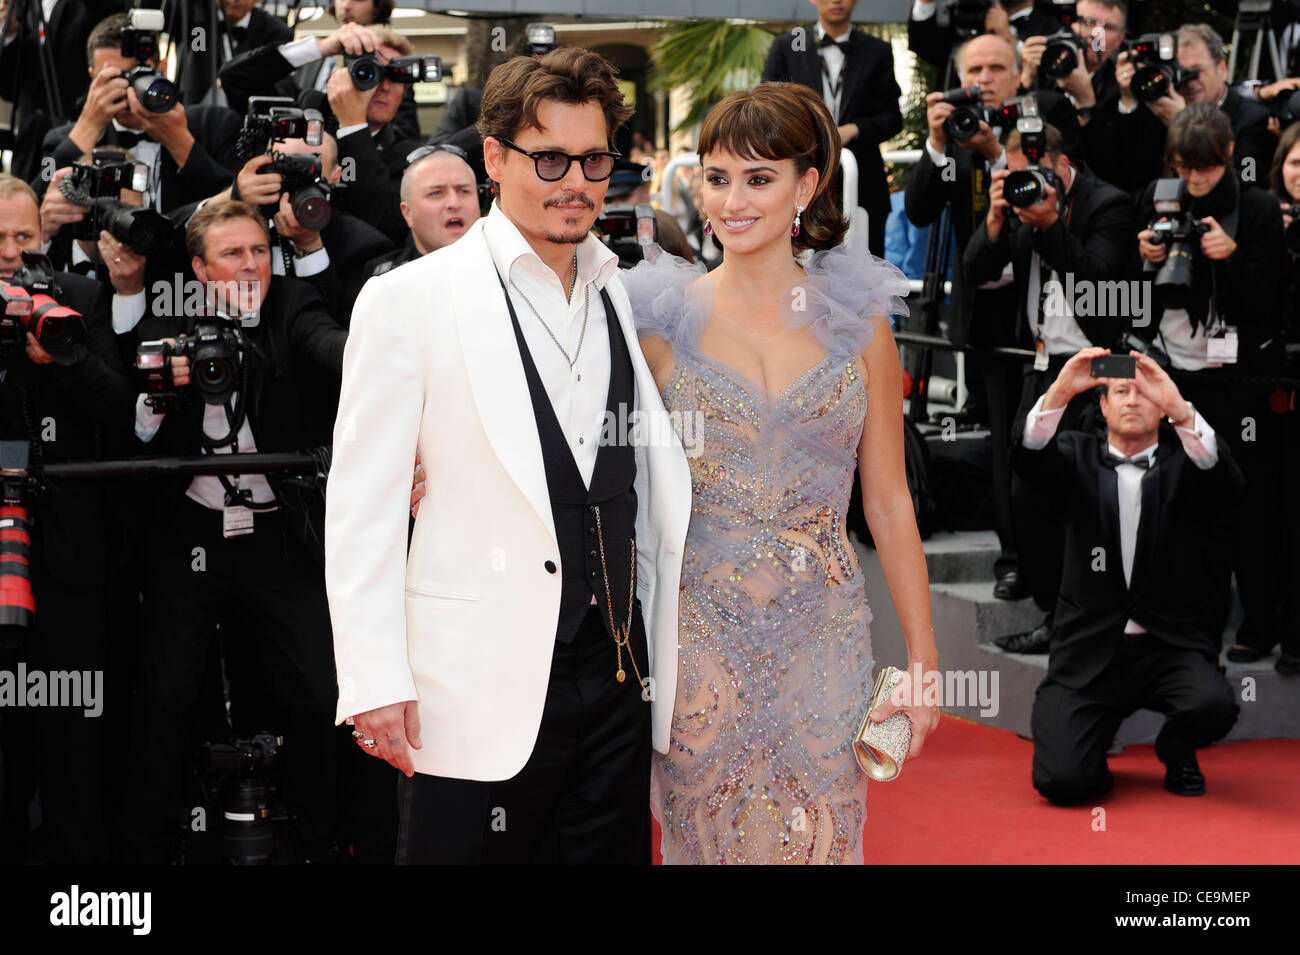 Johnny Depp and Penélope Cruz arrive for the screening of Pirates of the Caribbean: On Stranger Tides. - Stock Image